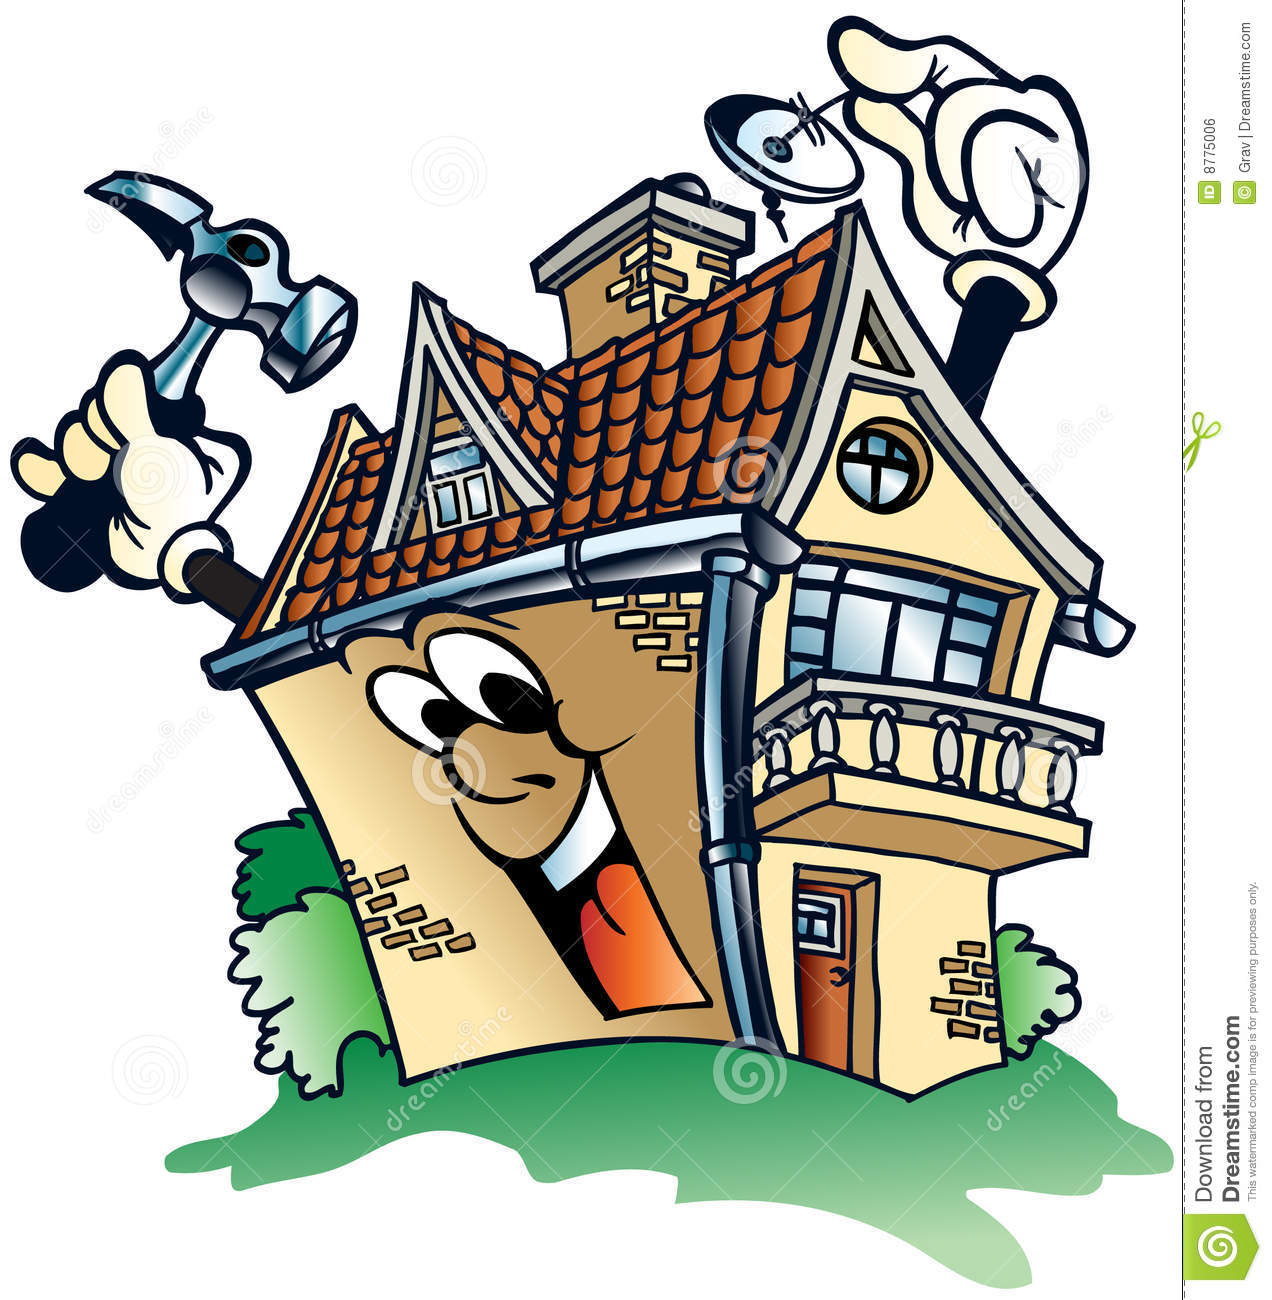 Home Repair Clipart House Repairs #JM5vQL.